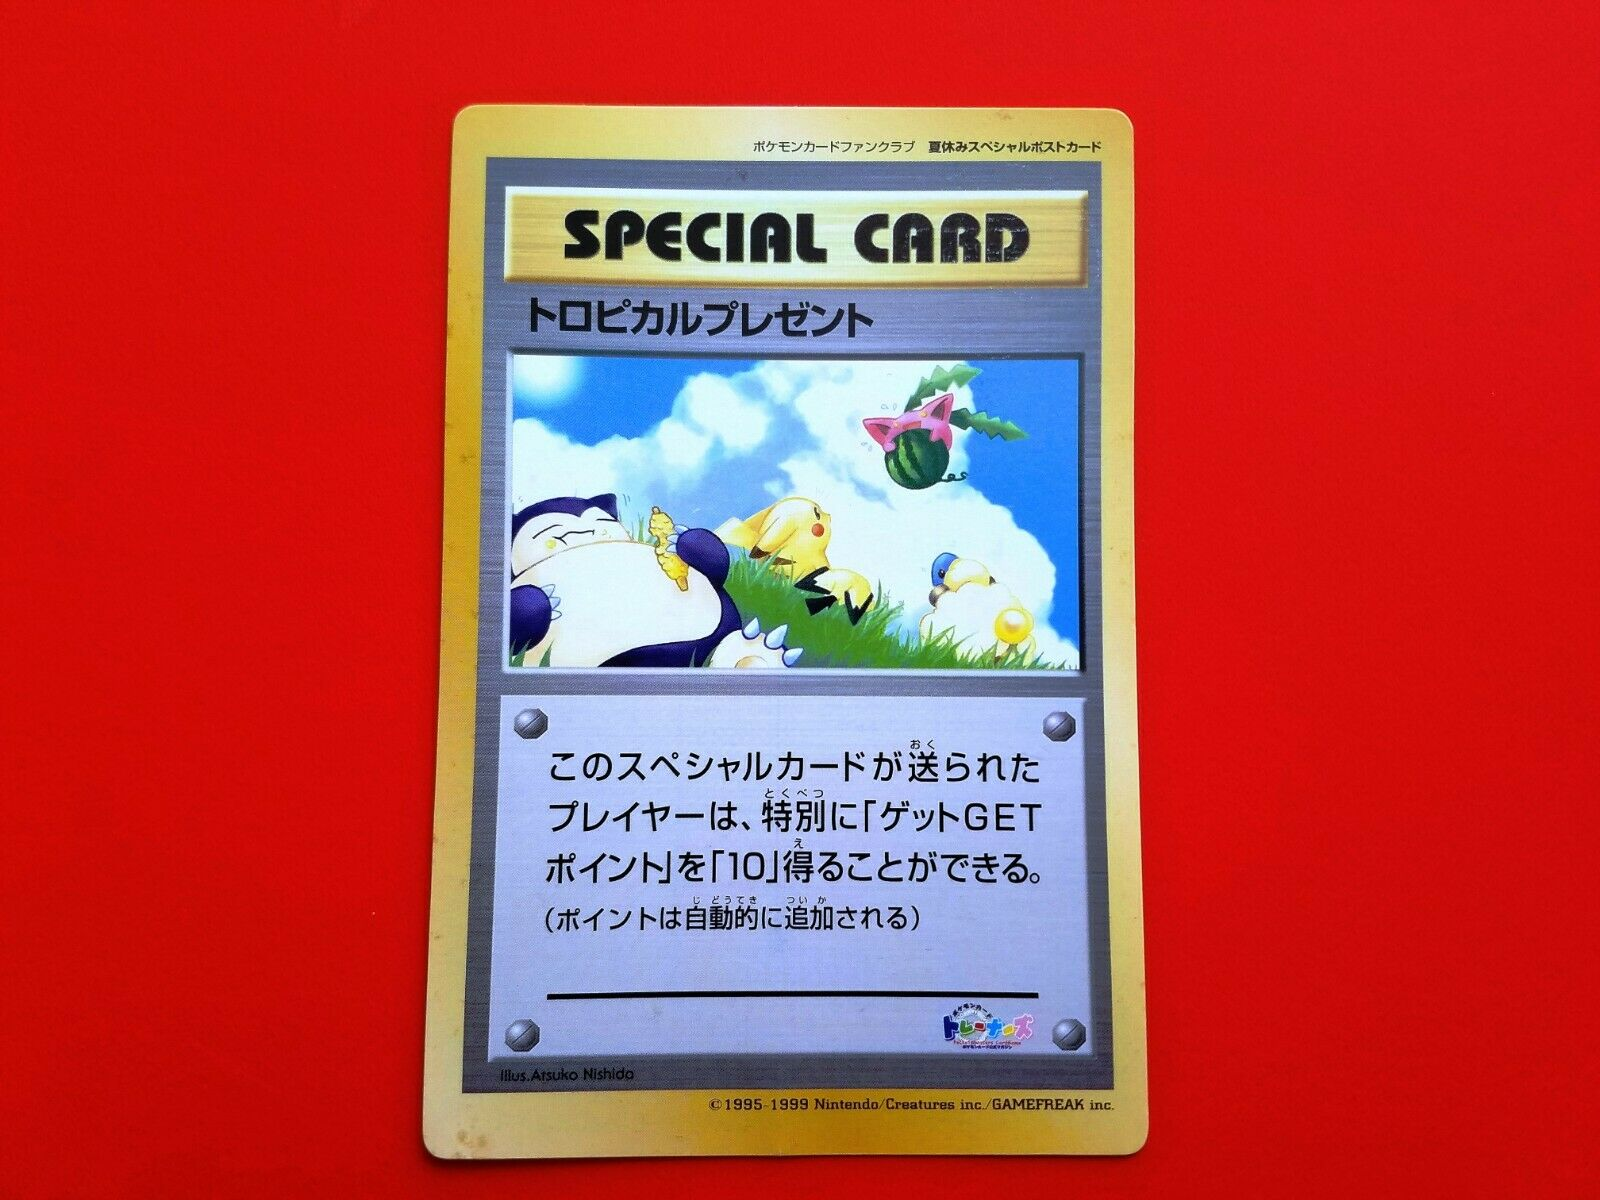 Pokemon Card Fan Club Promo Card 2000 Summer Limited Jumbo Card Post card Rare